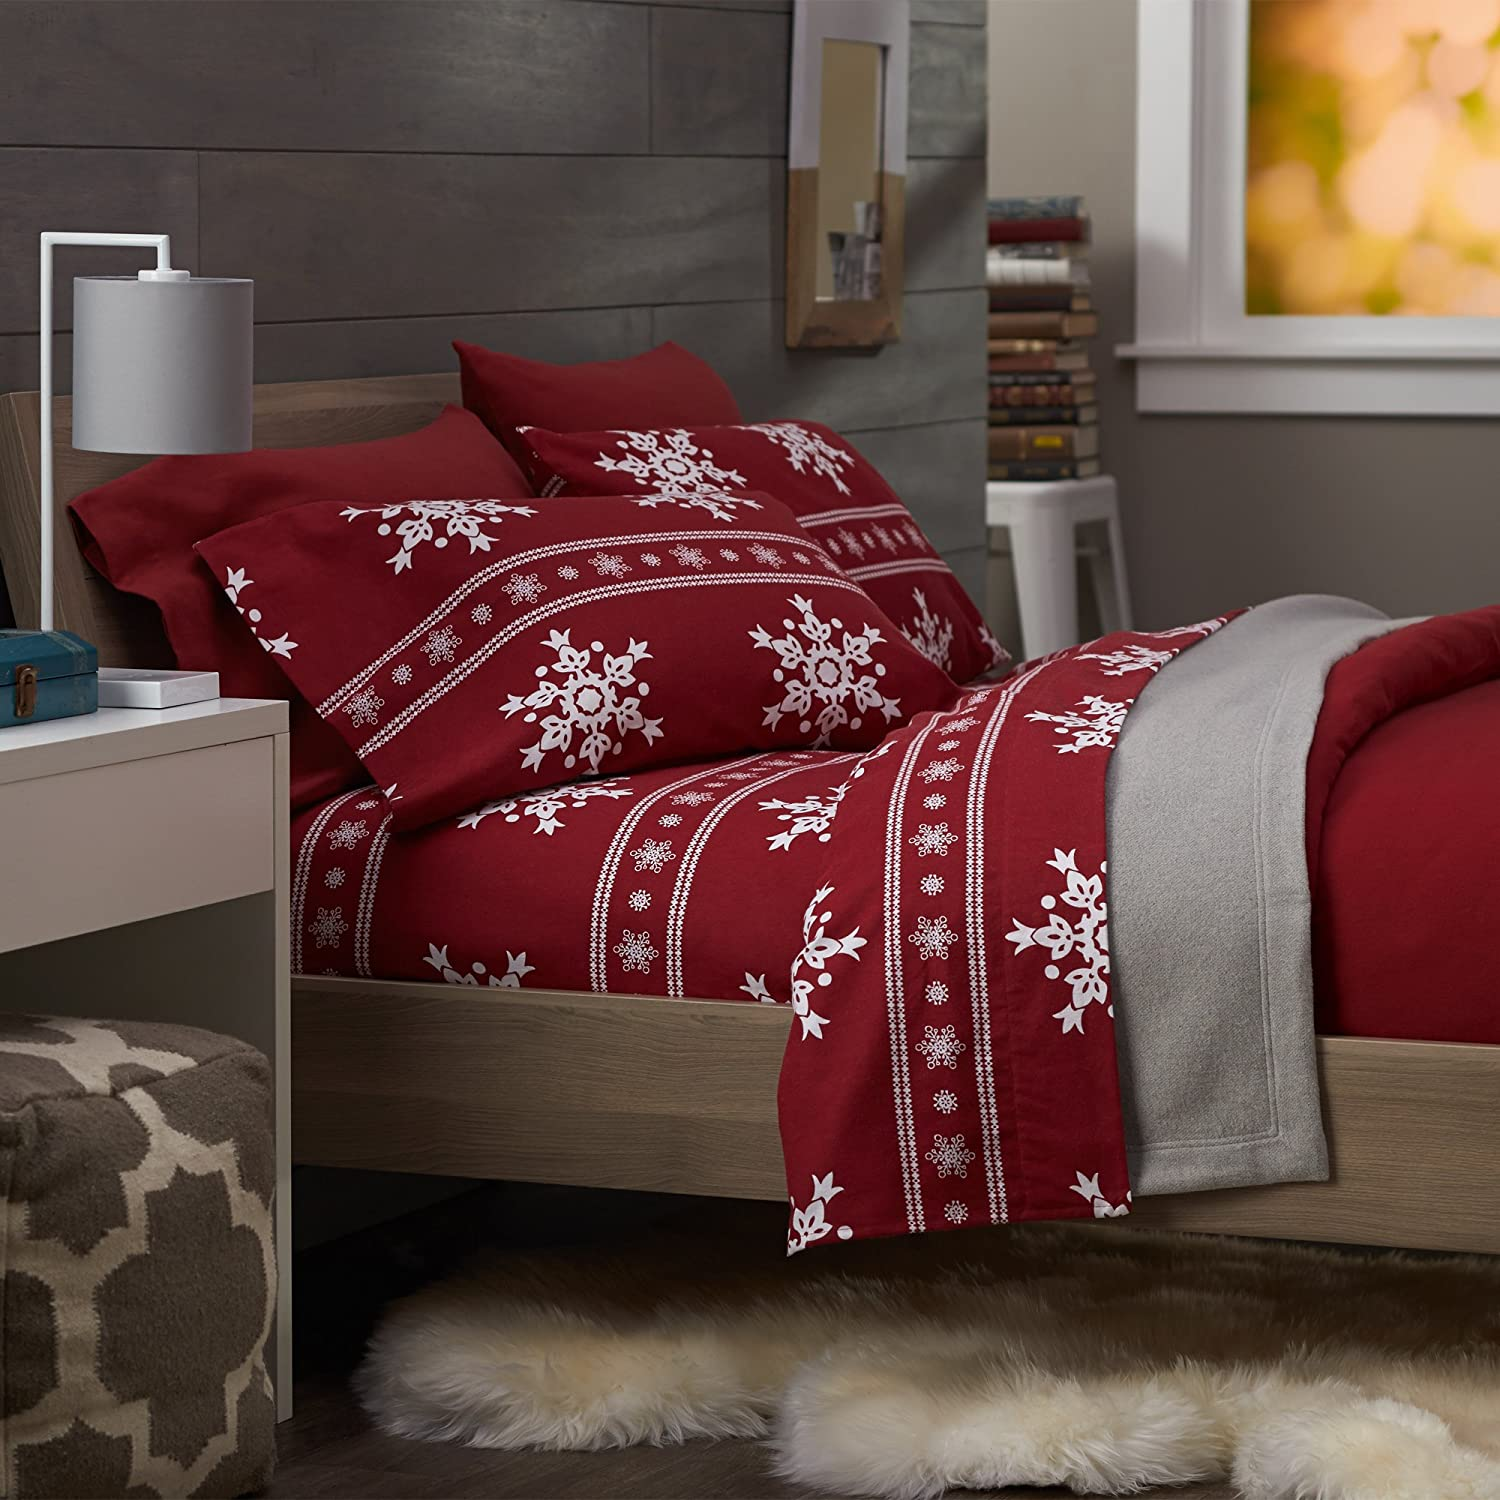 Christmas Bedding Sets Queen Glowing Holiday